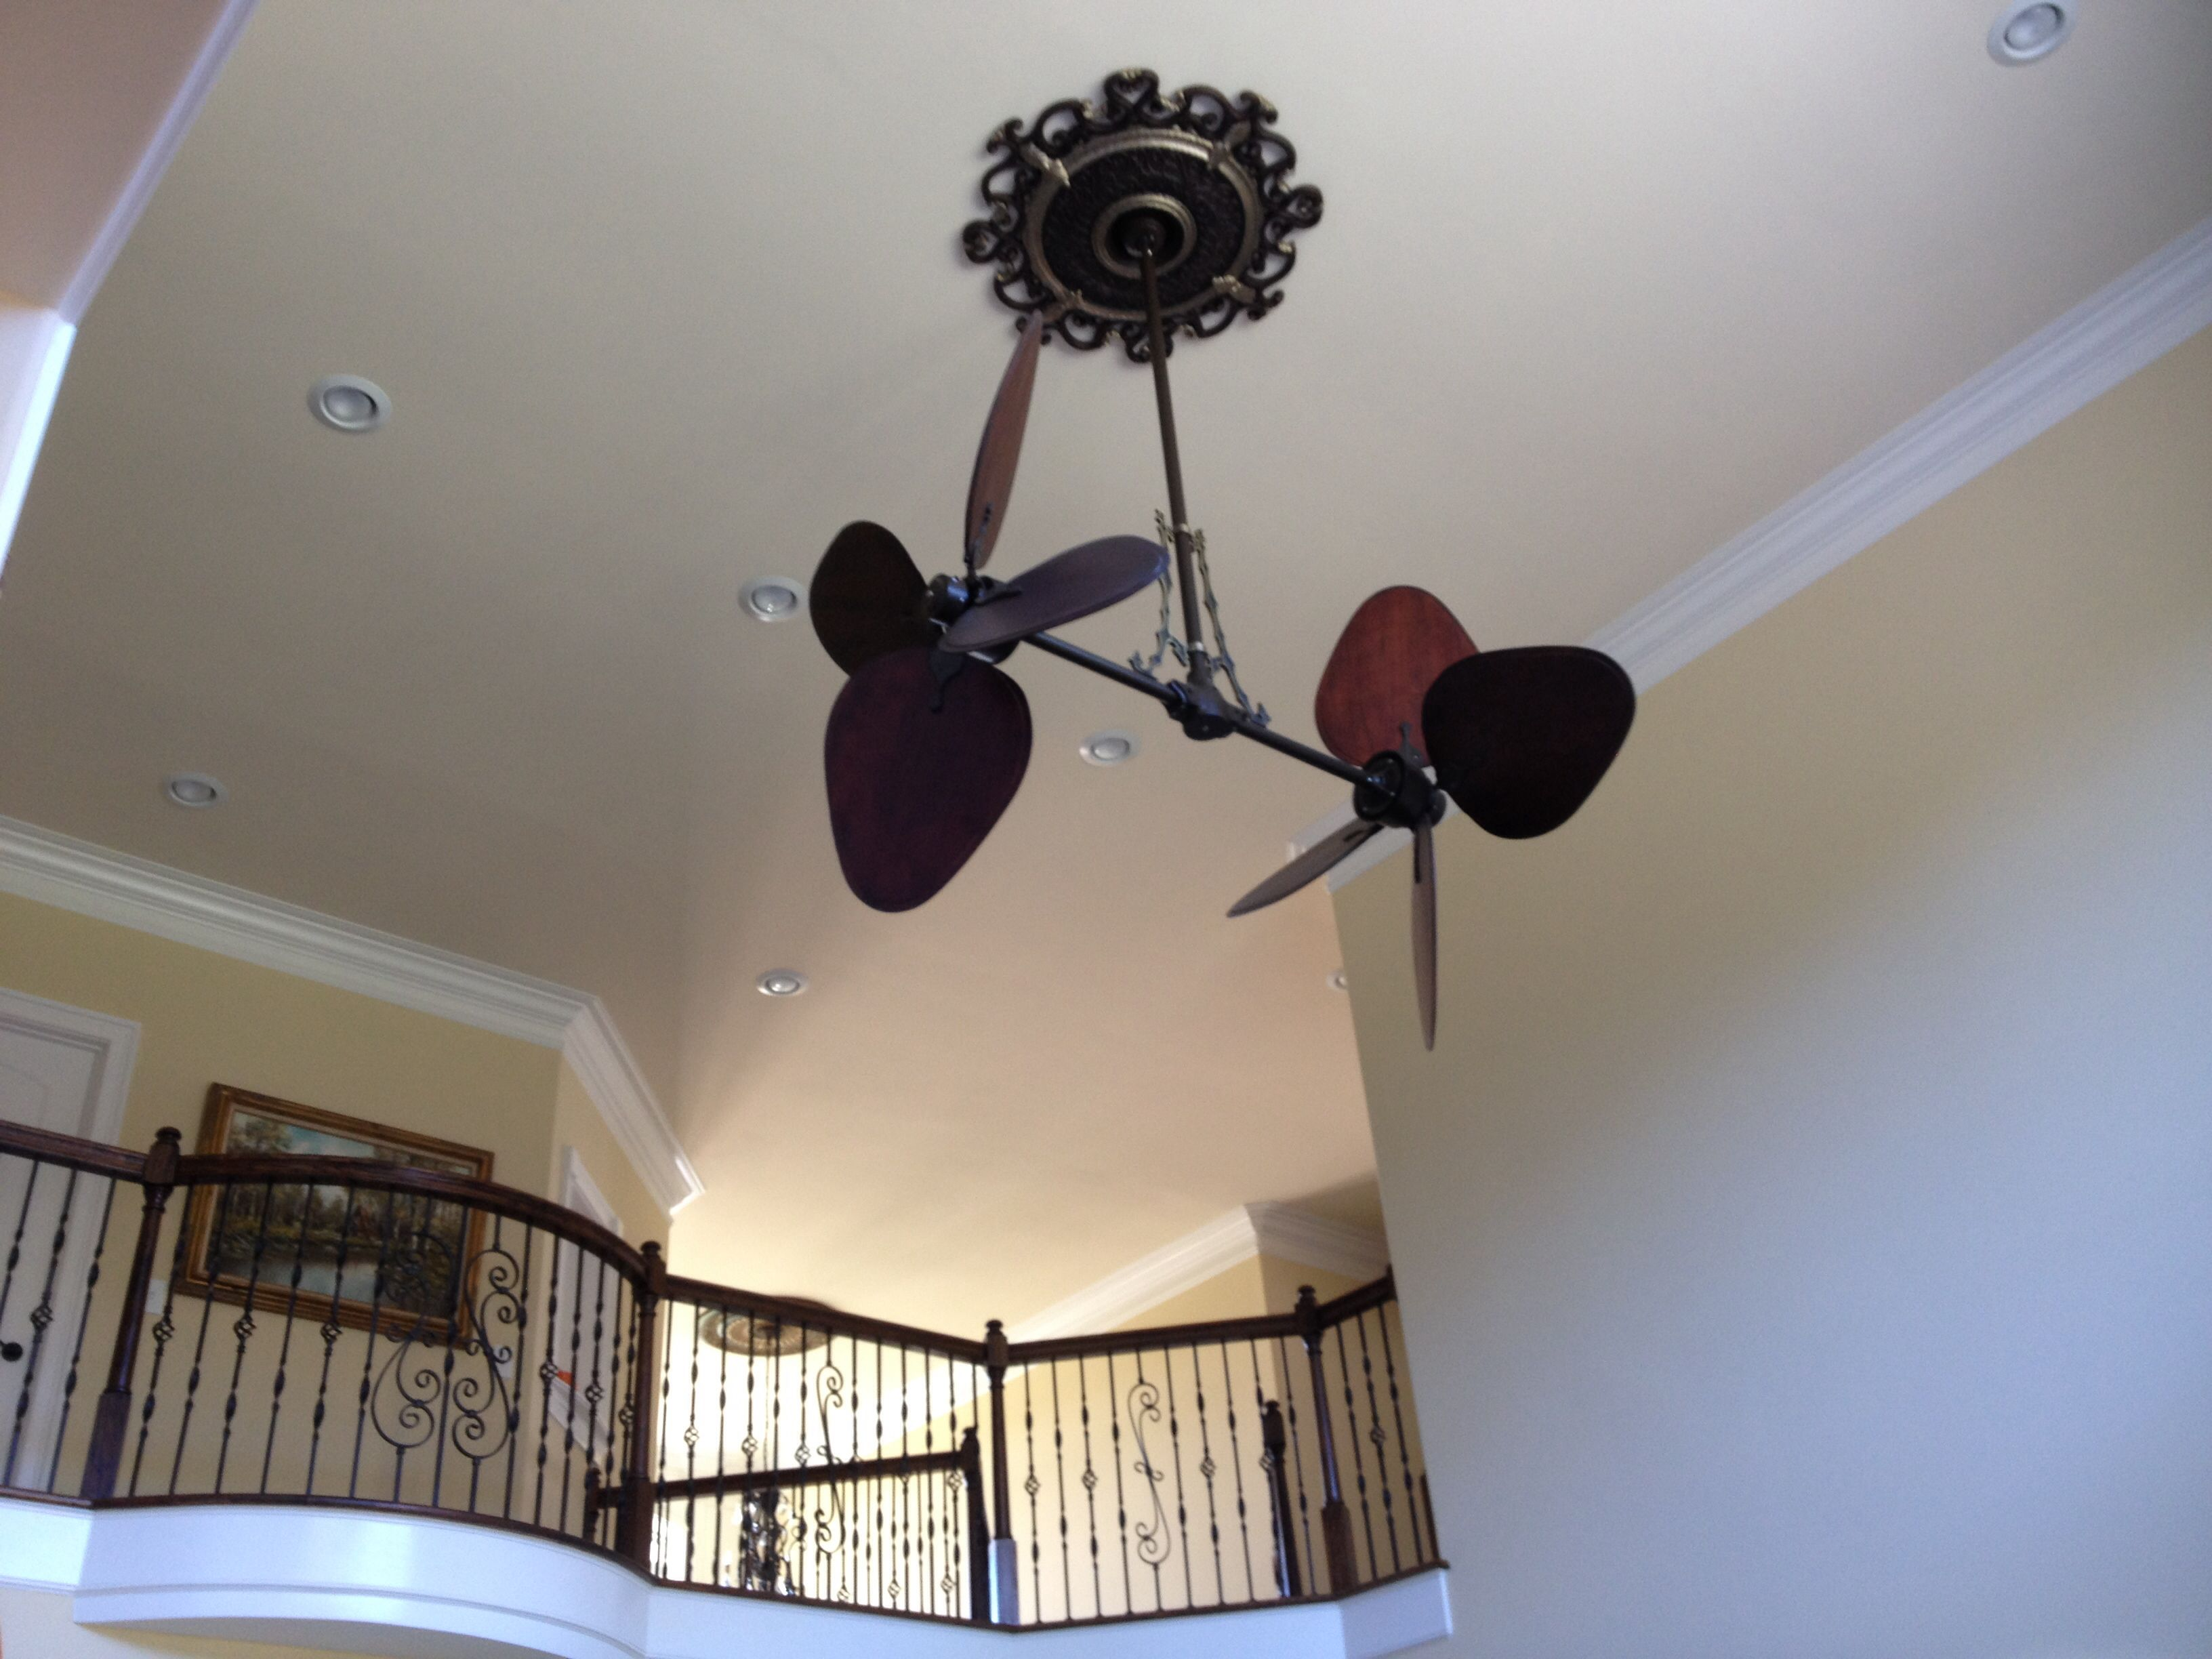 Vertical Fan At My Sisters Home Jealous Awesome Sister Home